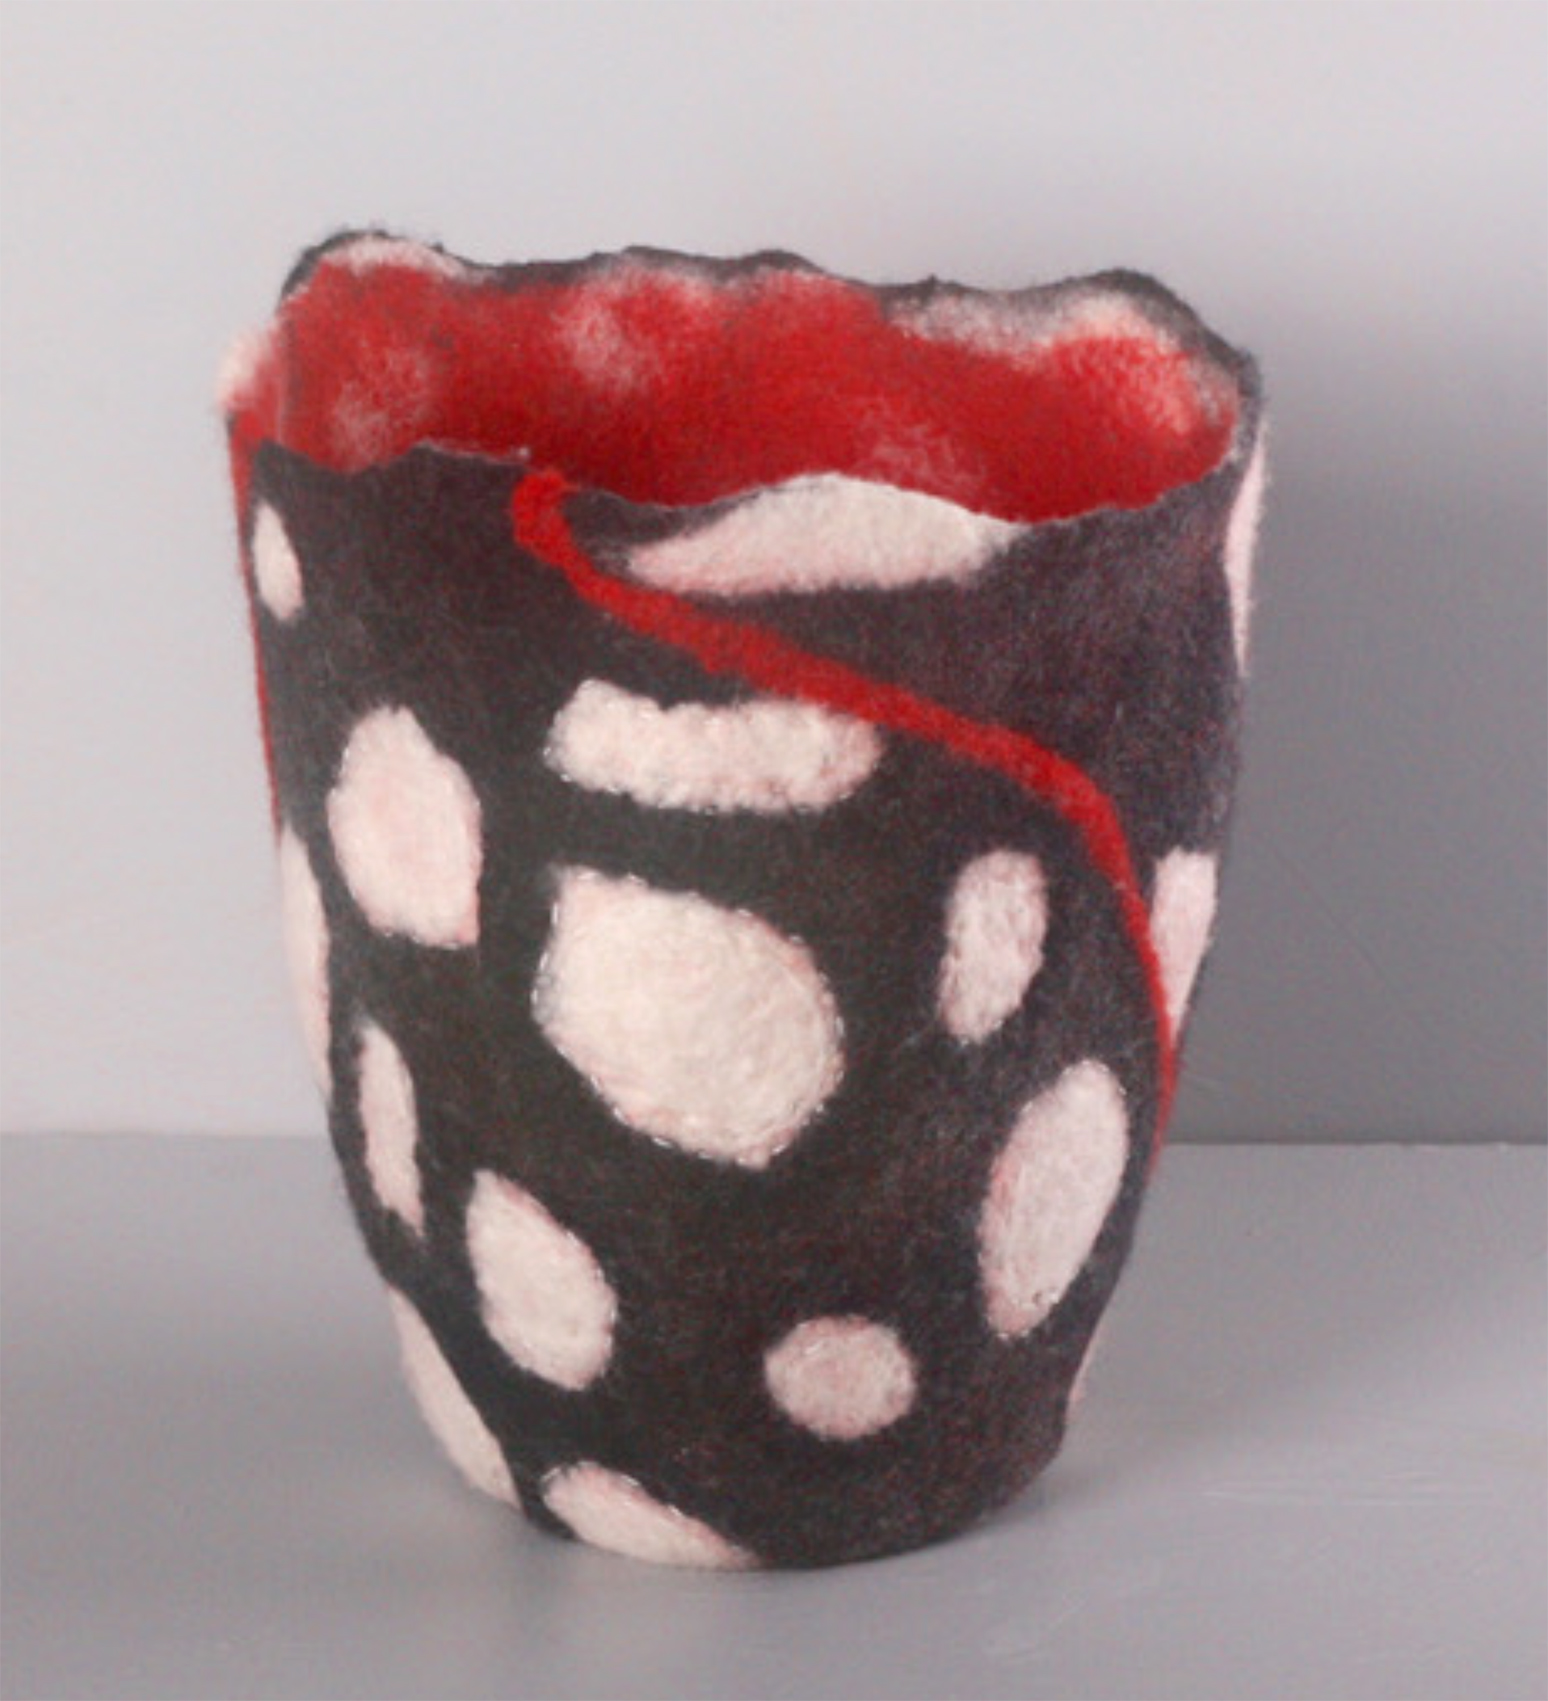 The Corner Store Gallery - Felt Vessel Workshop with Denise Lithgow